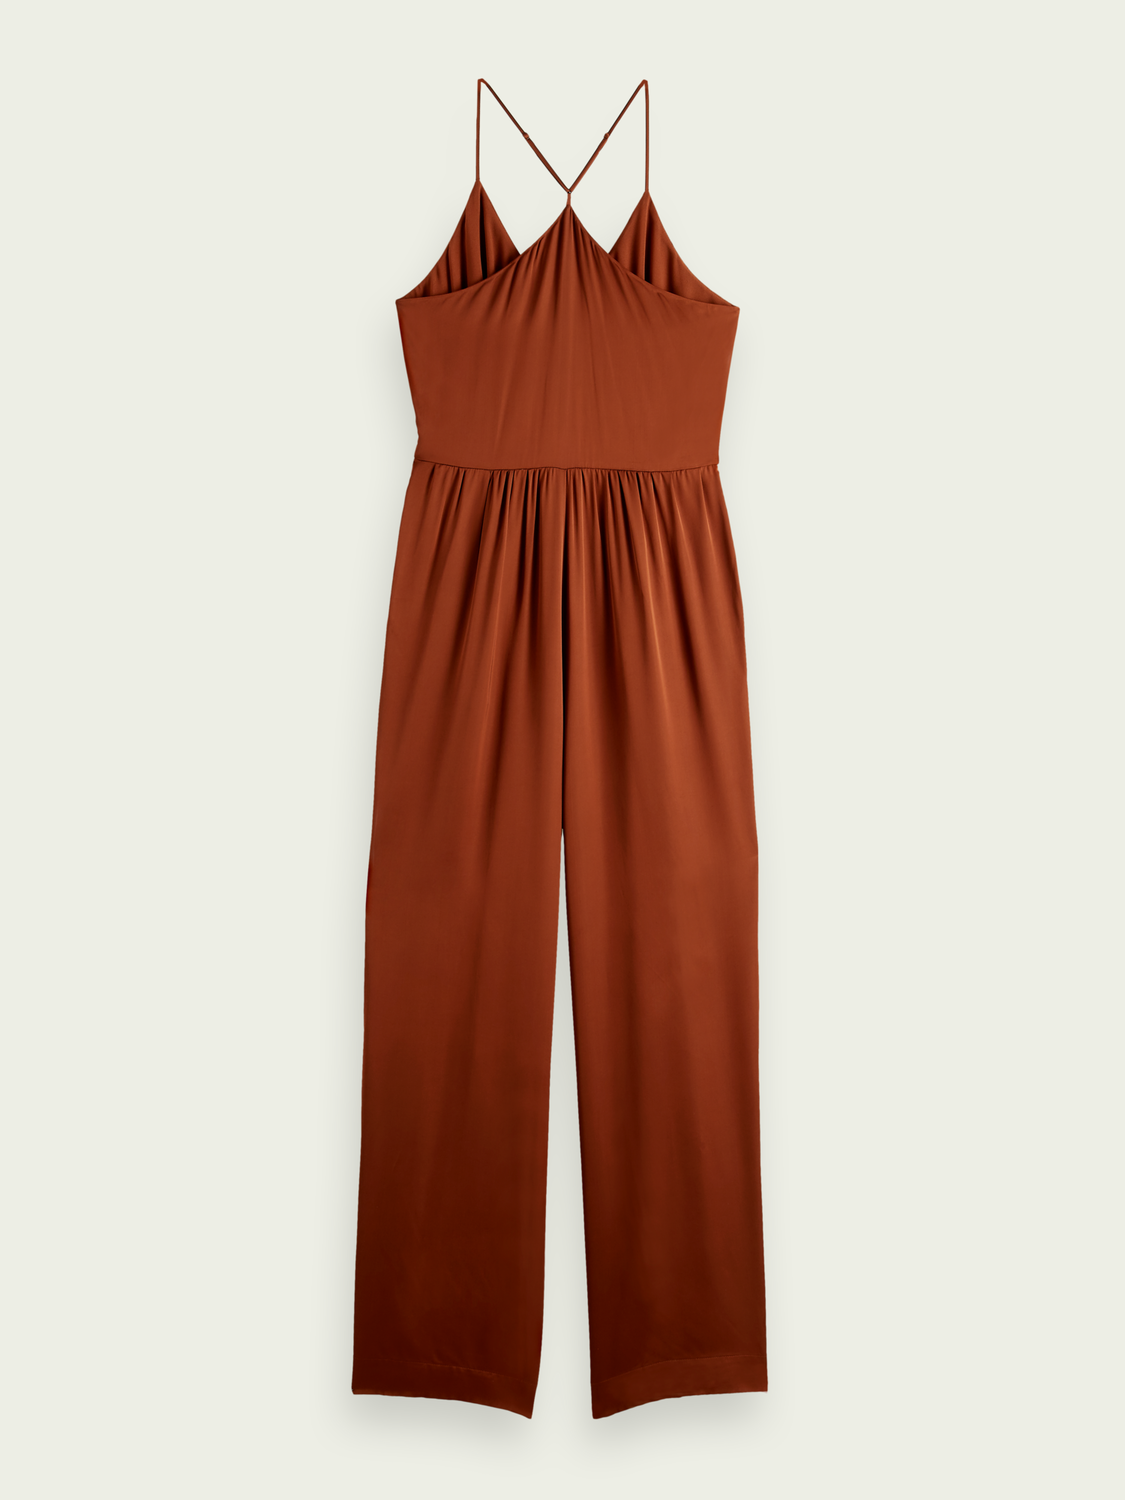 Damen Minimalistischer Wickel-Jumpsuit